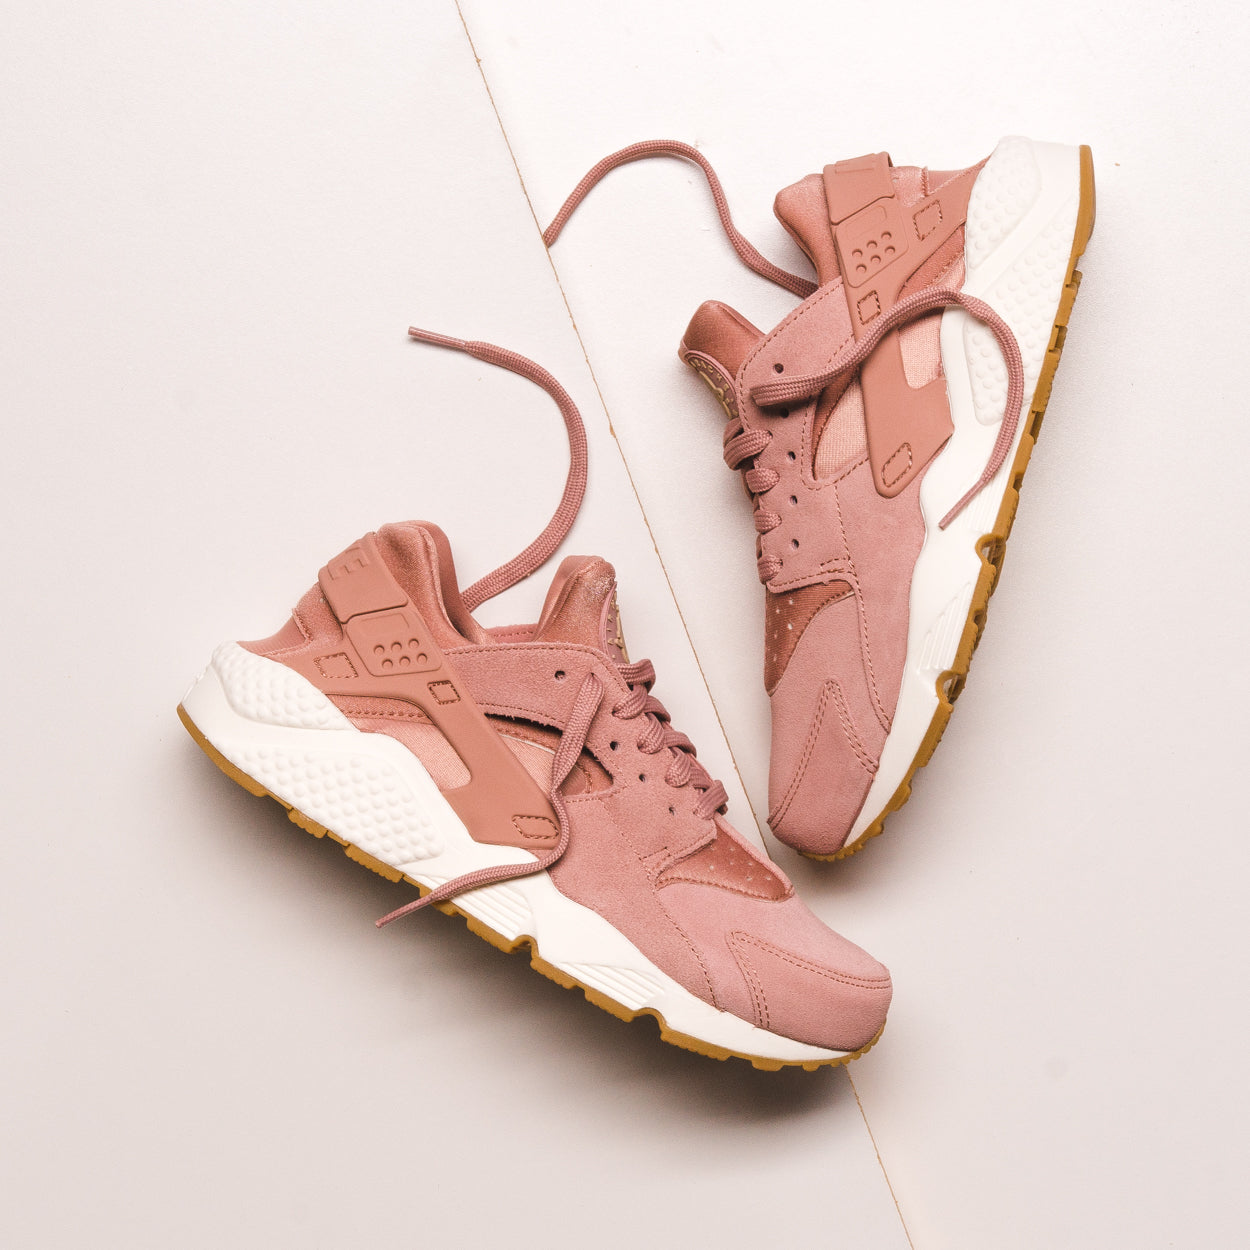 687ad3525a83 ... WMNS AIR HUARACHE RUN SD - PARTICLE PINK